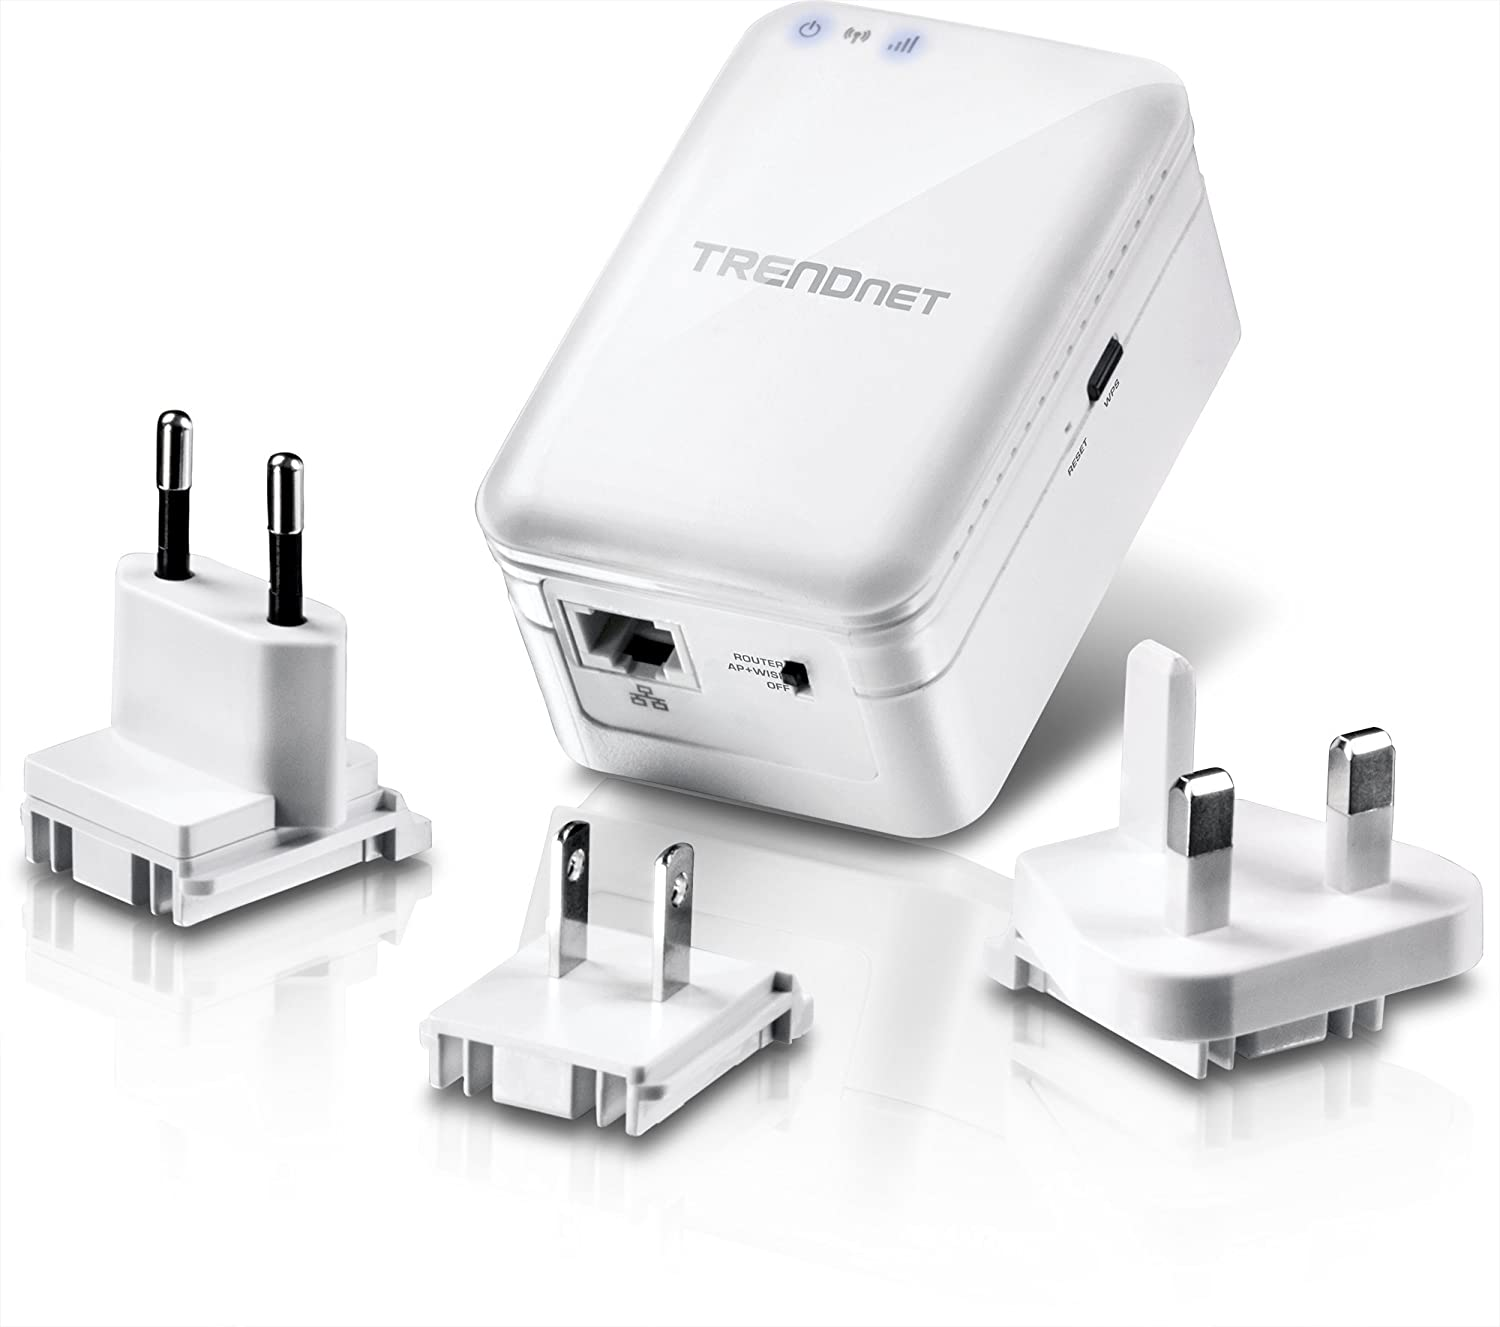 TRENDnet AC750 Wireless Travel Router, Wisp, AP, Repeater Mode, North America/Euro/UK Plugs(TEW-817DTR)